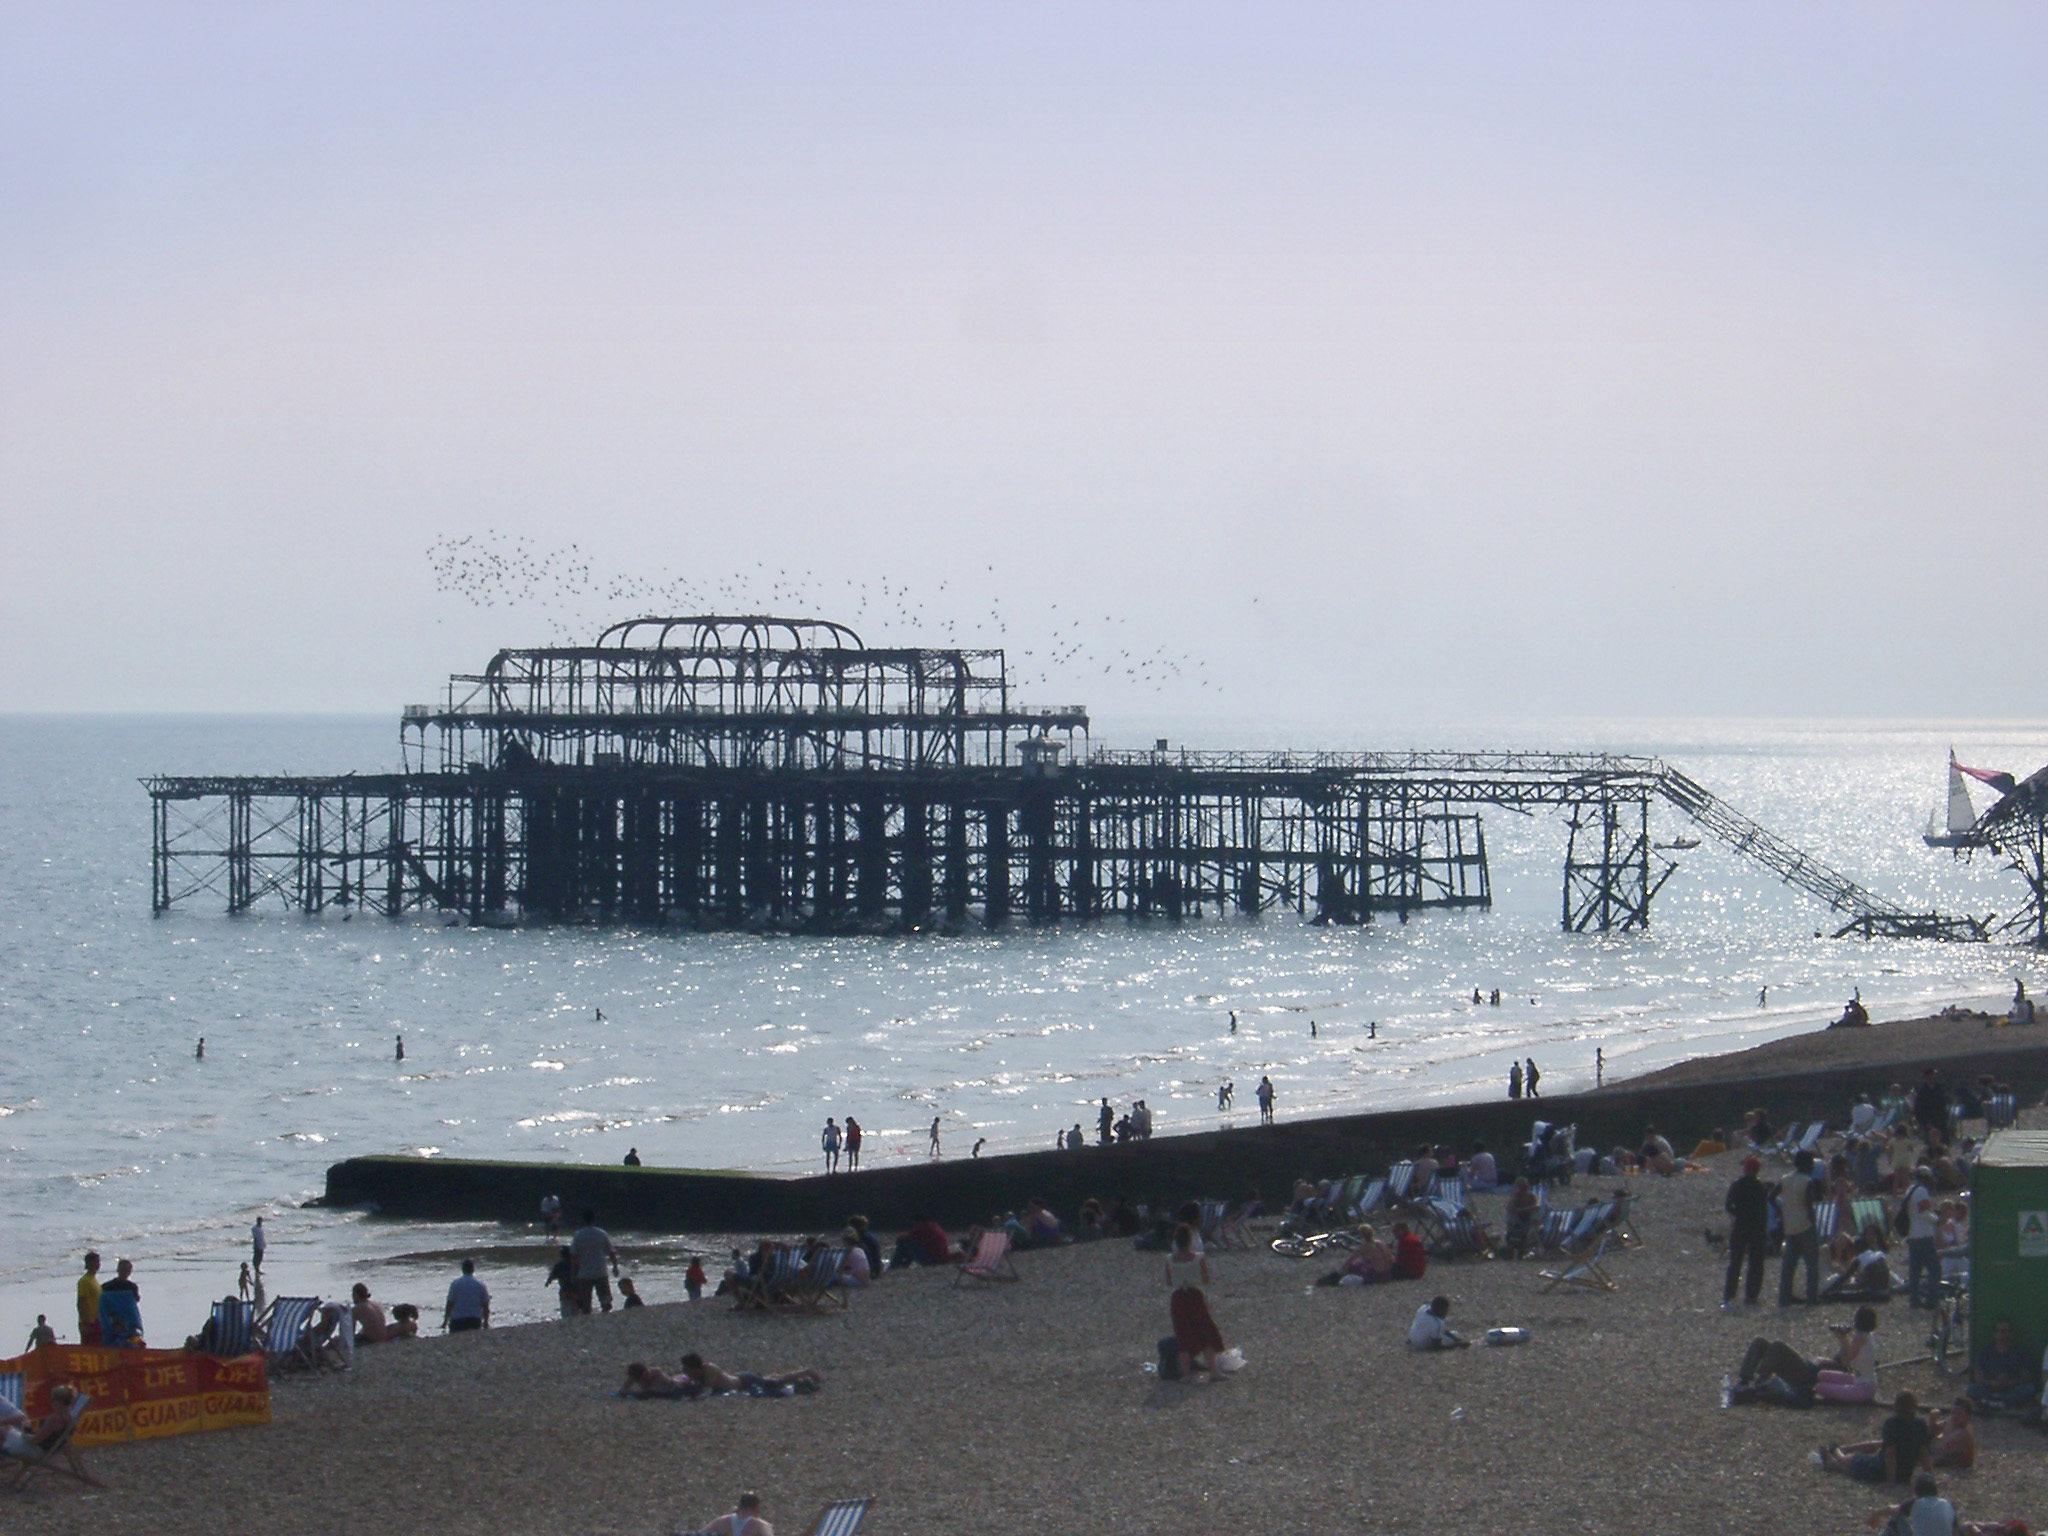 Famous Old Damaged West Pier Due to Heavy Storms in 1975 at Brighton, England. Captured with Tourist Relaxing on the Beach.